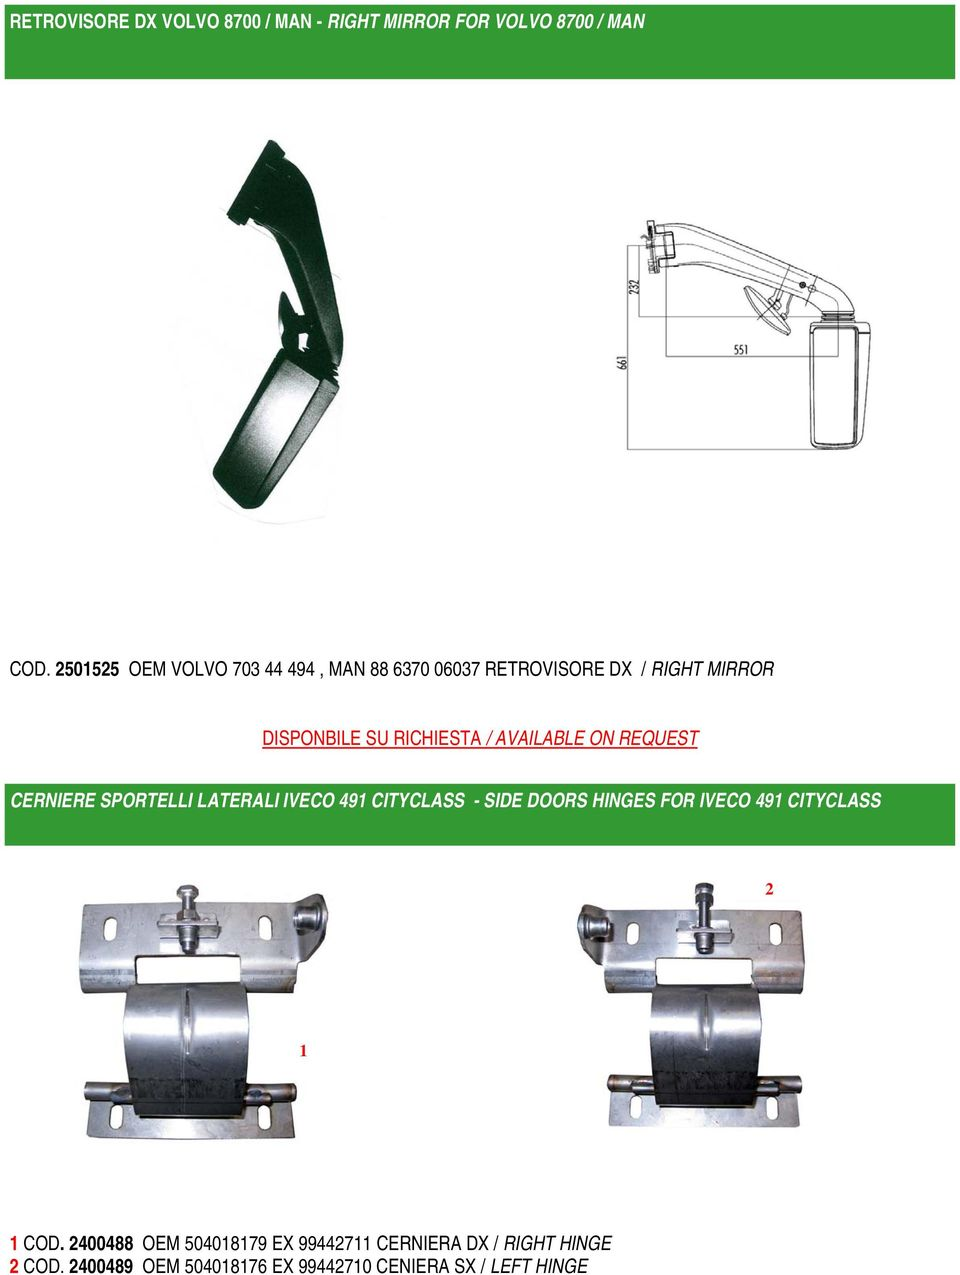 AVAILABLE ON REQUEST CERNIERE SPORTELLI LATERALI IVECO 491 CITYCLASS - SIDE DOORS HINGES FOR IVECO 491